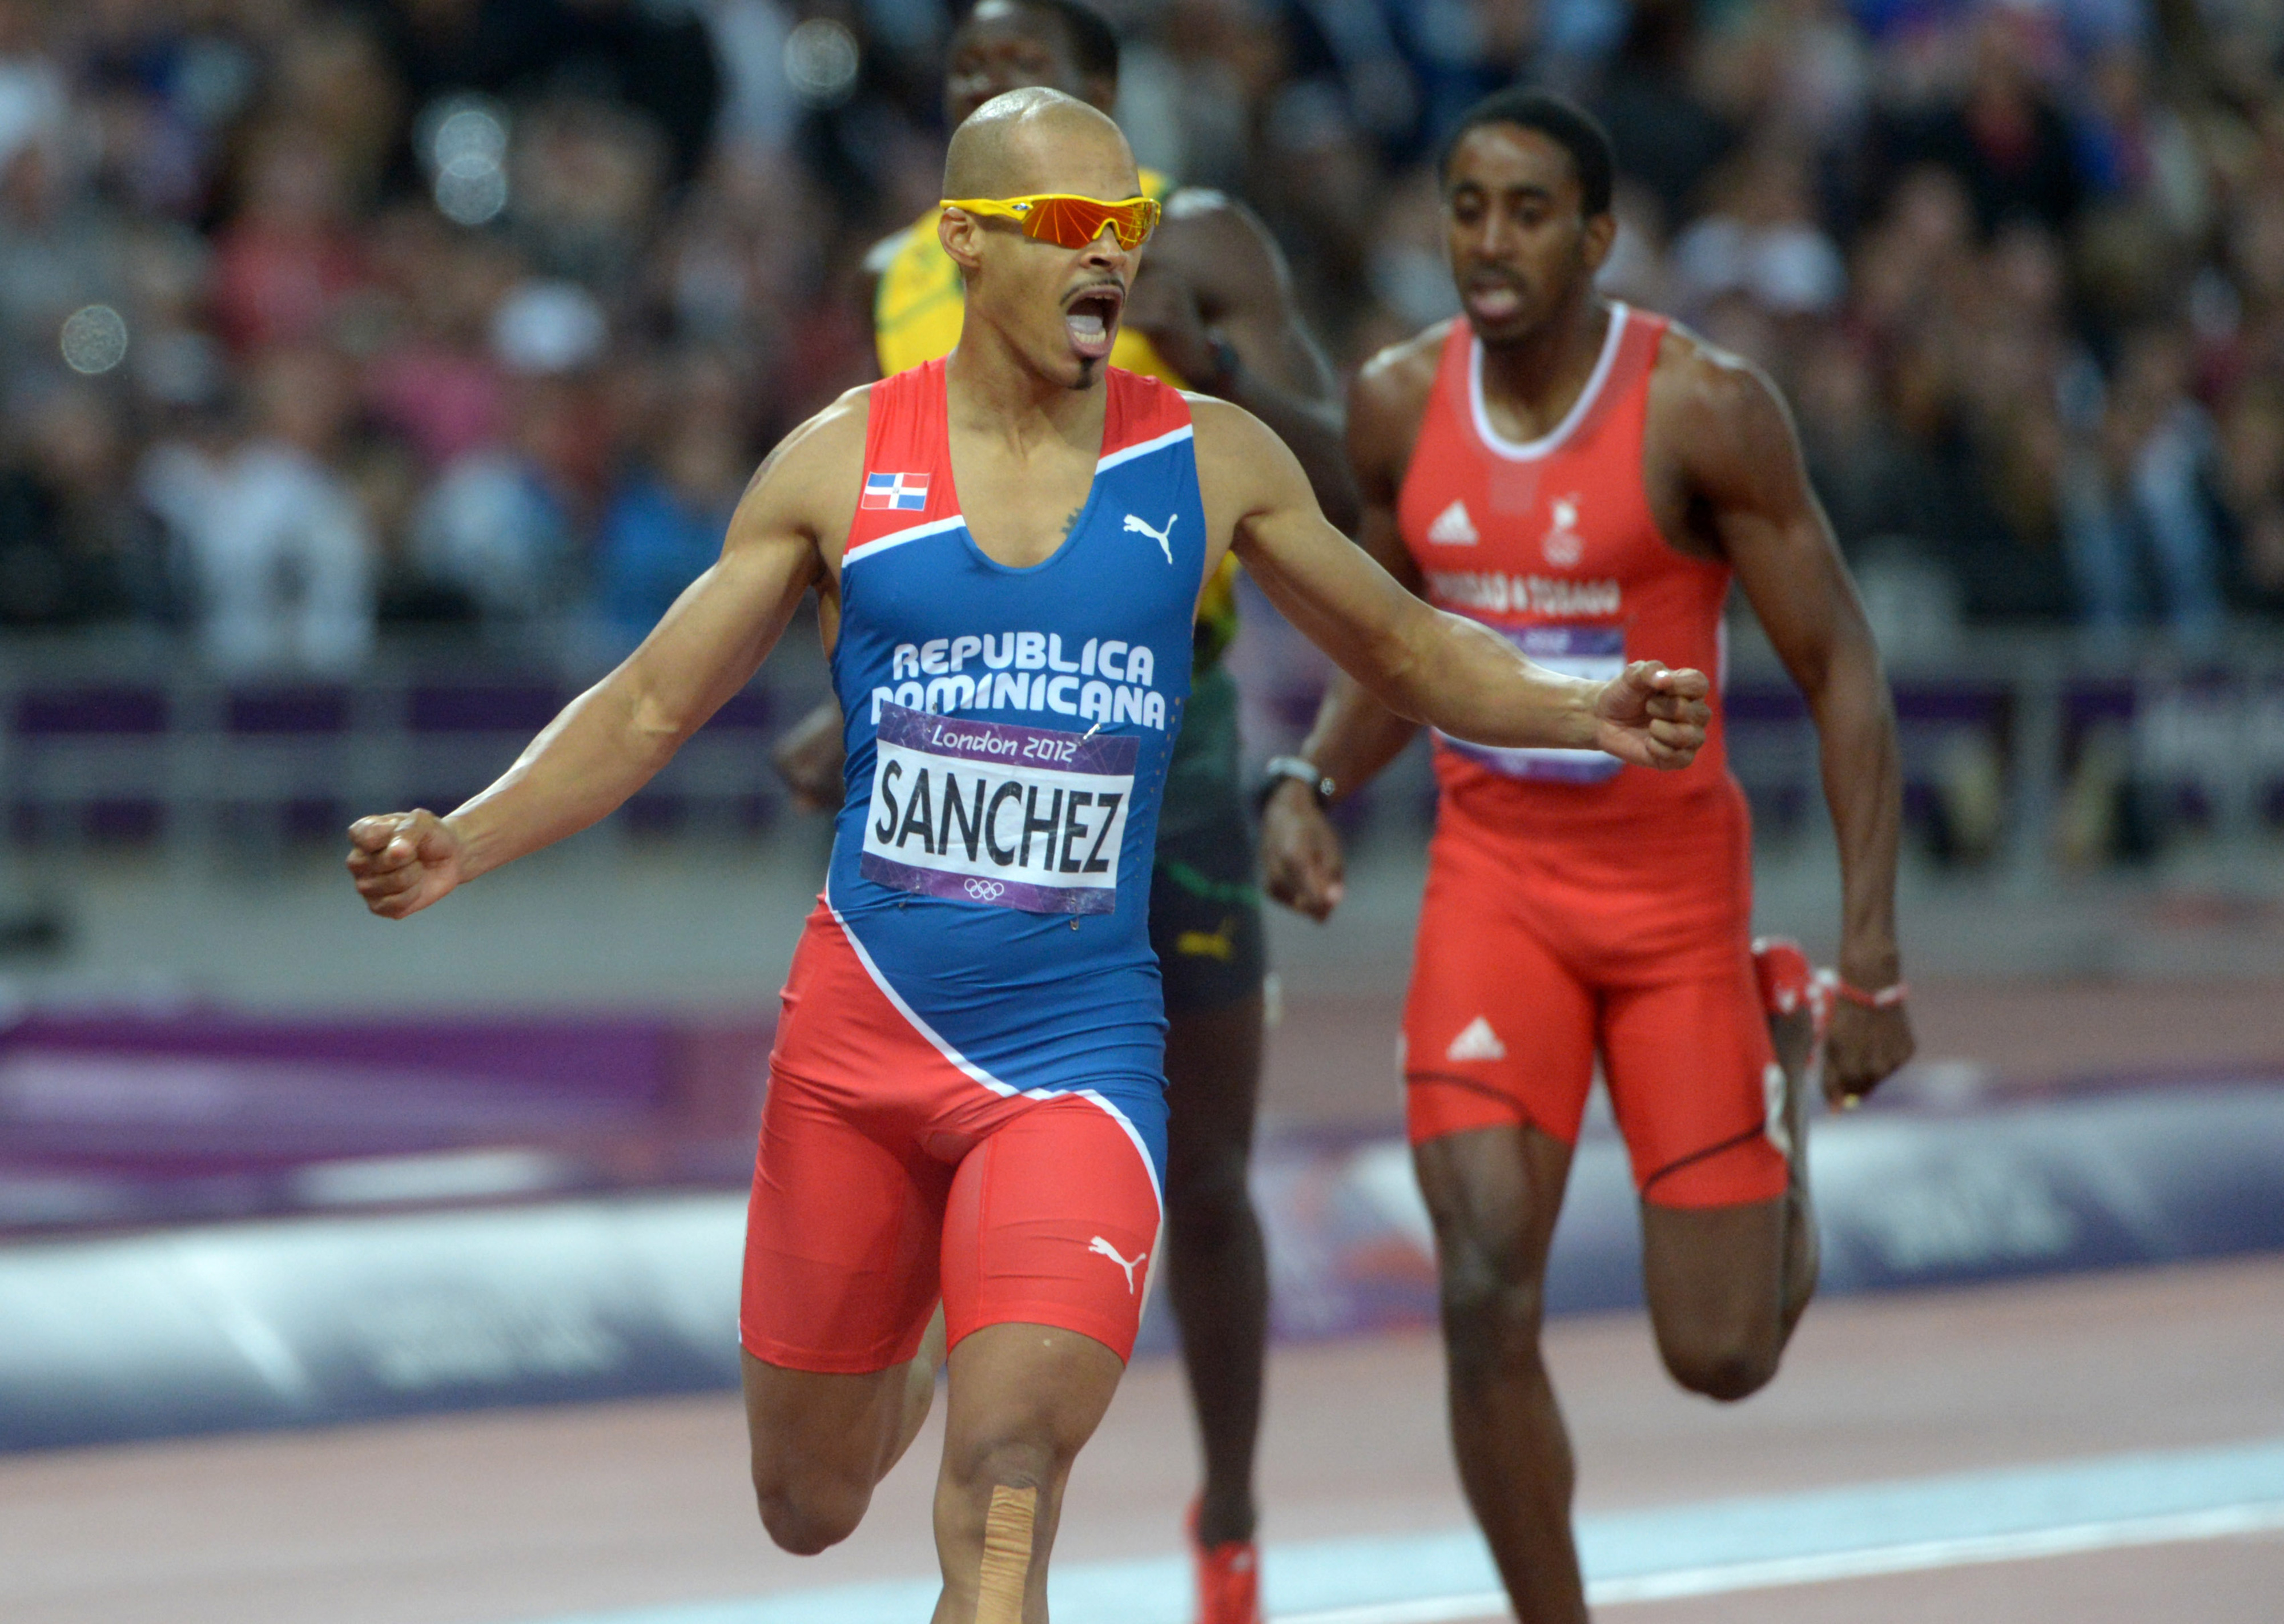 Aug 6, 2012; London, United Kingdom; Felix Sanchez (DOM) reacts after winning the mens 400m hurdles in 47.63 during the London 2012 Olympic Games at Olympic Stadium. Mandatory Credit: Kirby Lee-USA TODAY Sports